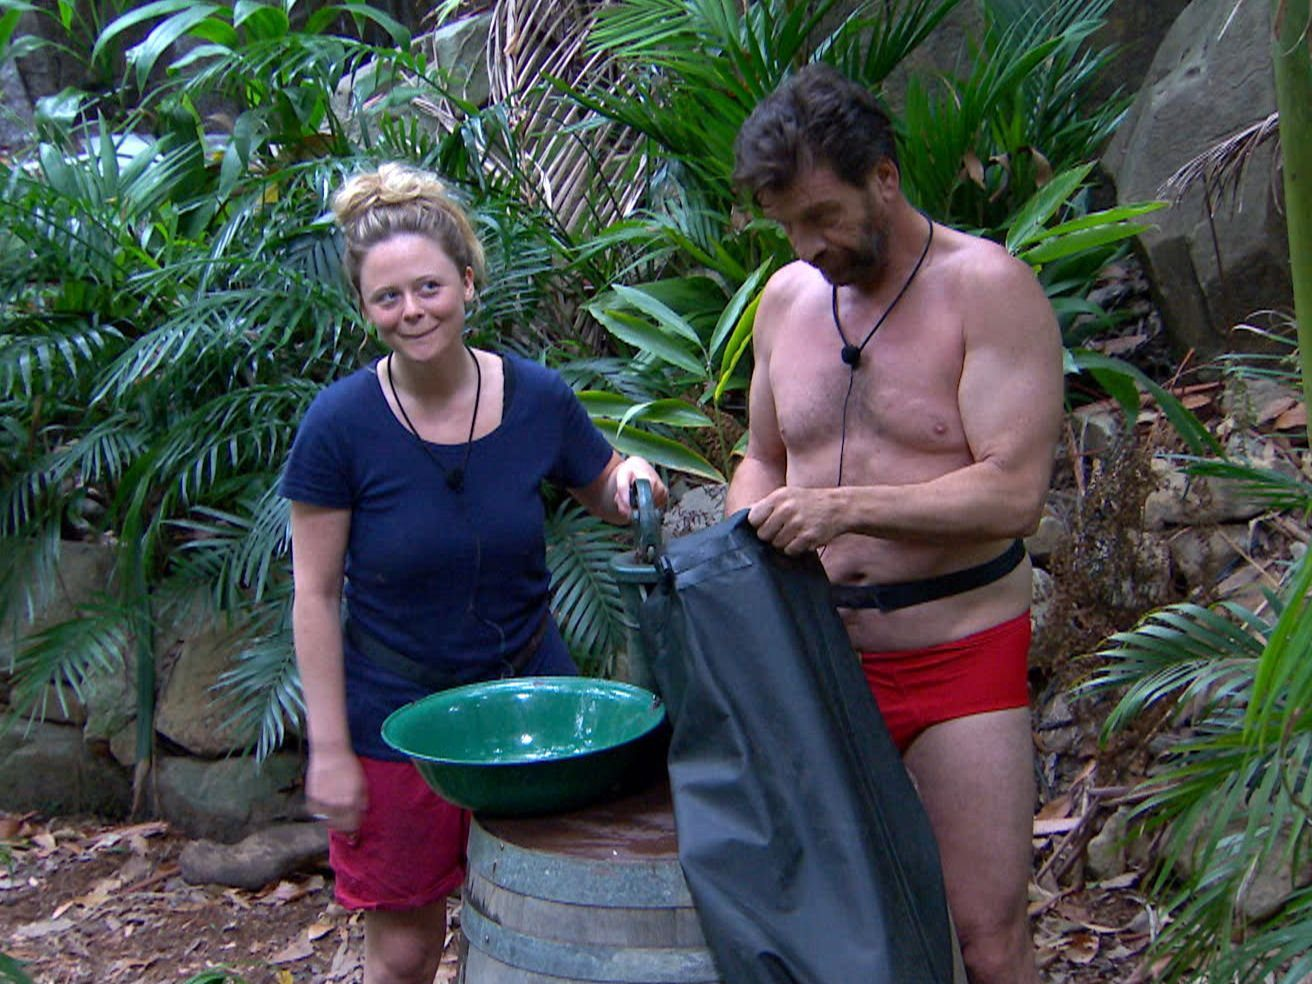 STRICT EMBARGO - NOT TO BE USED BEFORE 22:30 GMT, 04 DEC 2018 - EDITORIAL USE ONLY Mandatory Credit: Photo by ITV/REX (10013449au) Morning Story and Sair Leaves Camp - Emily Atack and Nick Knowles 'I'm a Celebrity... Get Me Out of Here!' TV Show, Series 18, Australia - 04 Dec 2018